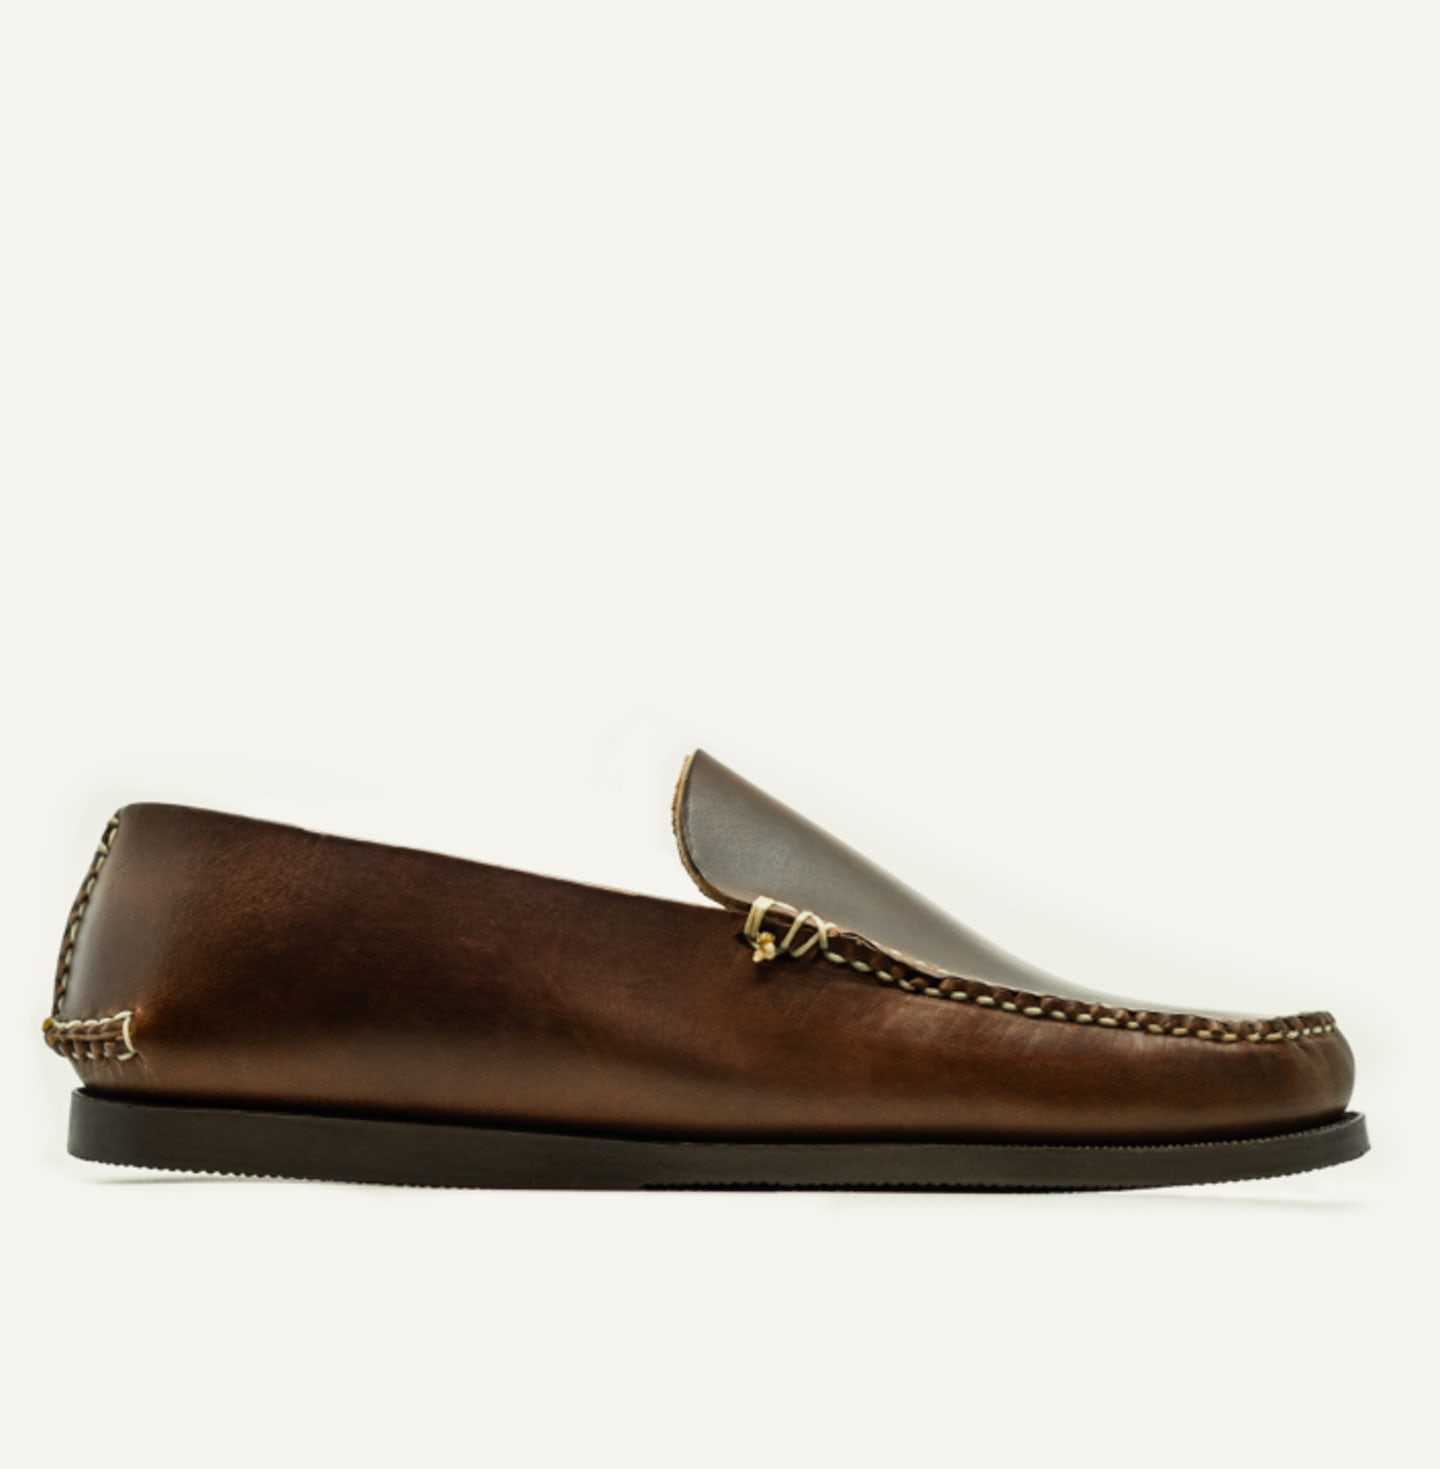 Slip Moc - Brown 12oz Chromexcel - Camp Sole - Made in U.S.A. by Oak Street Bootmakers - View 1